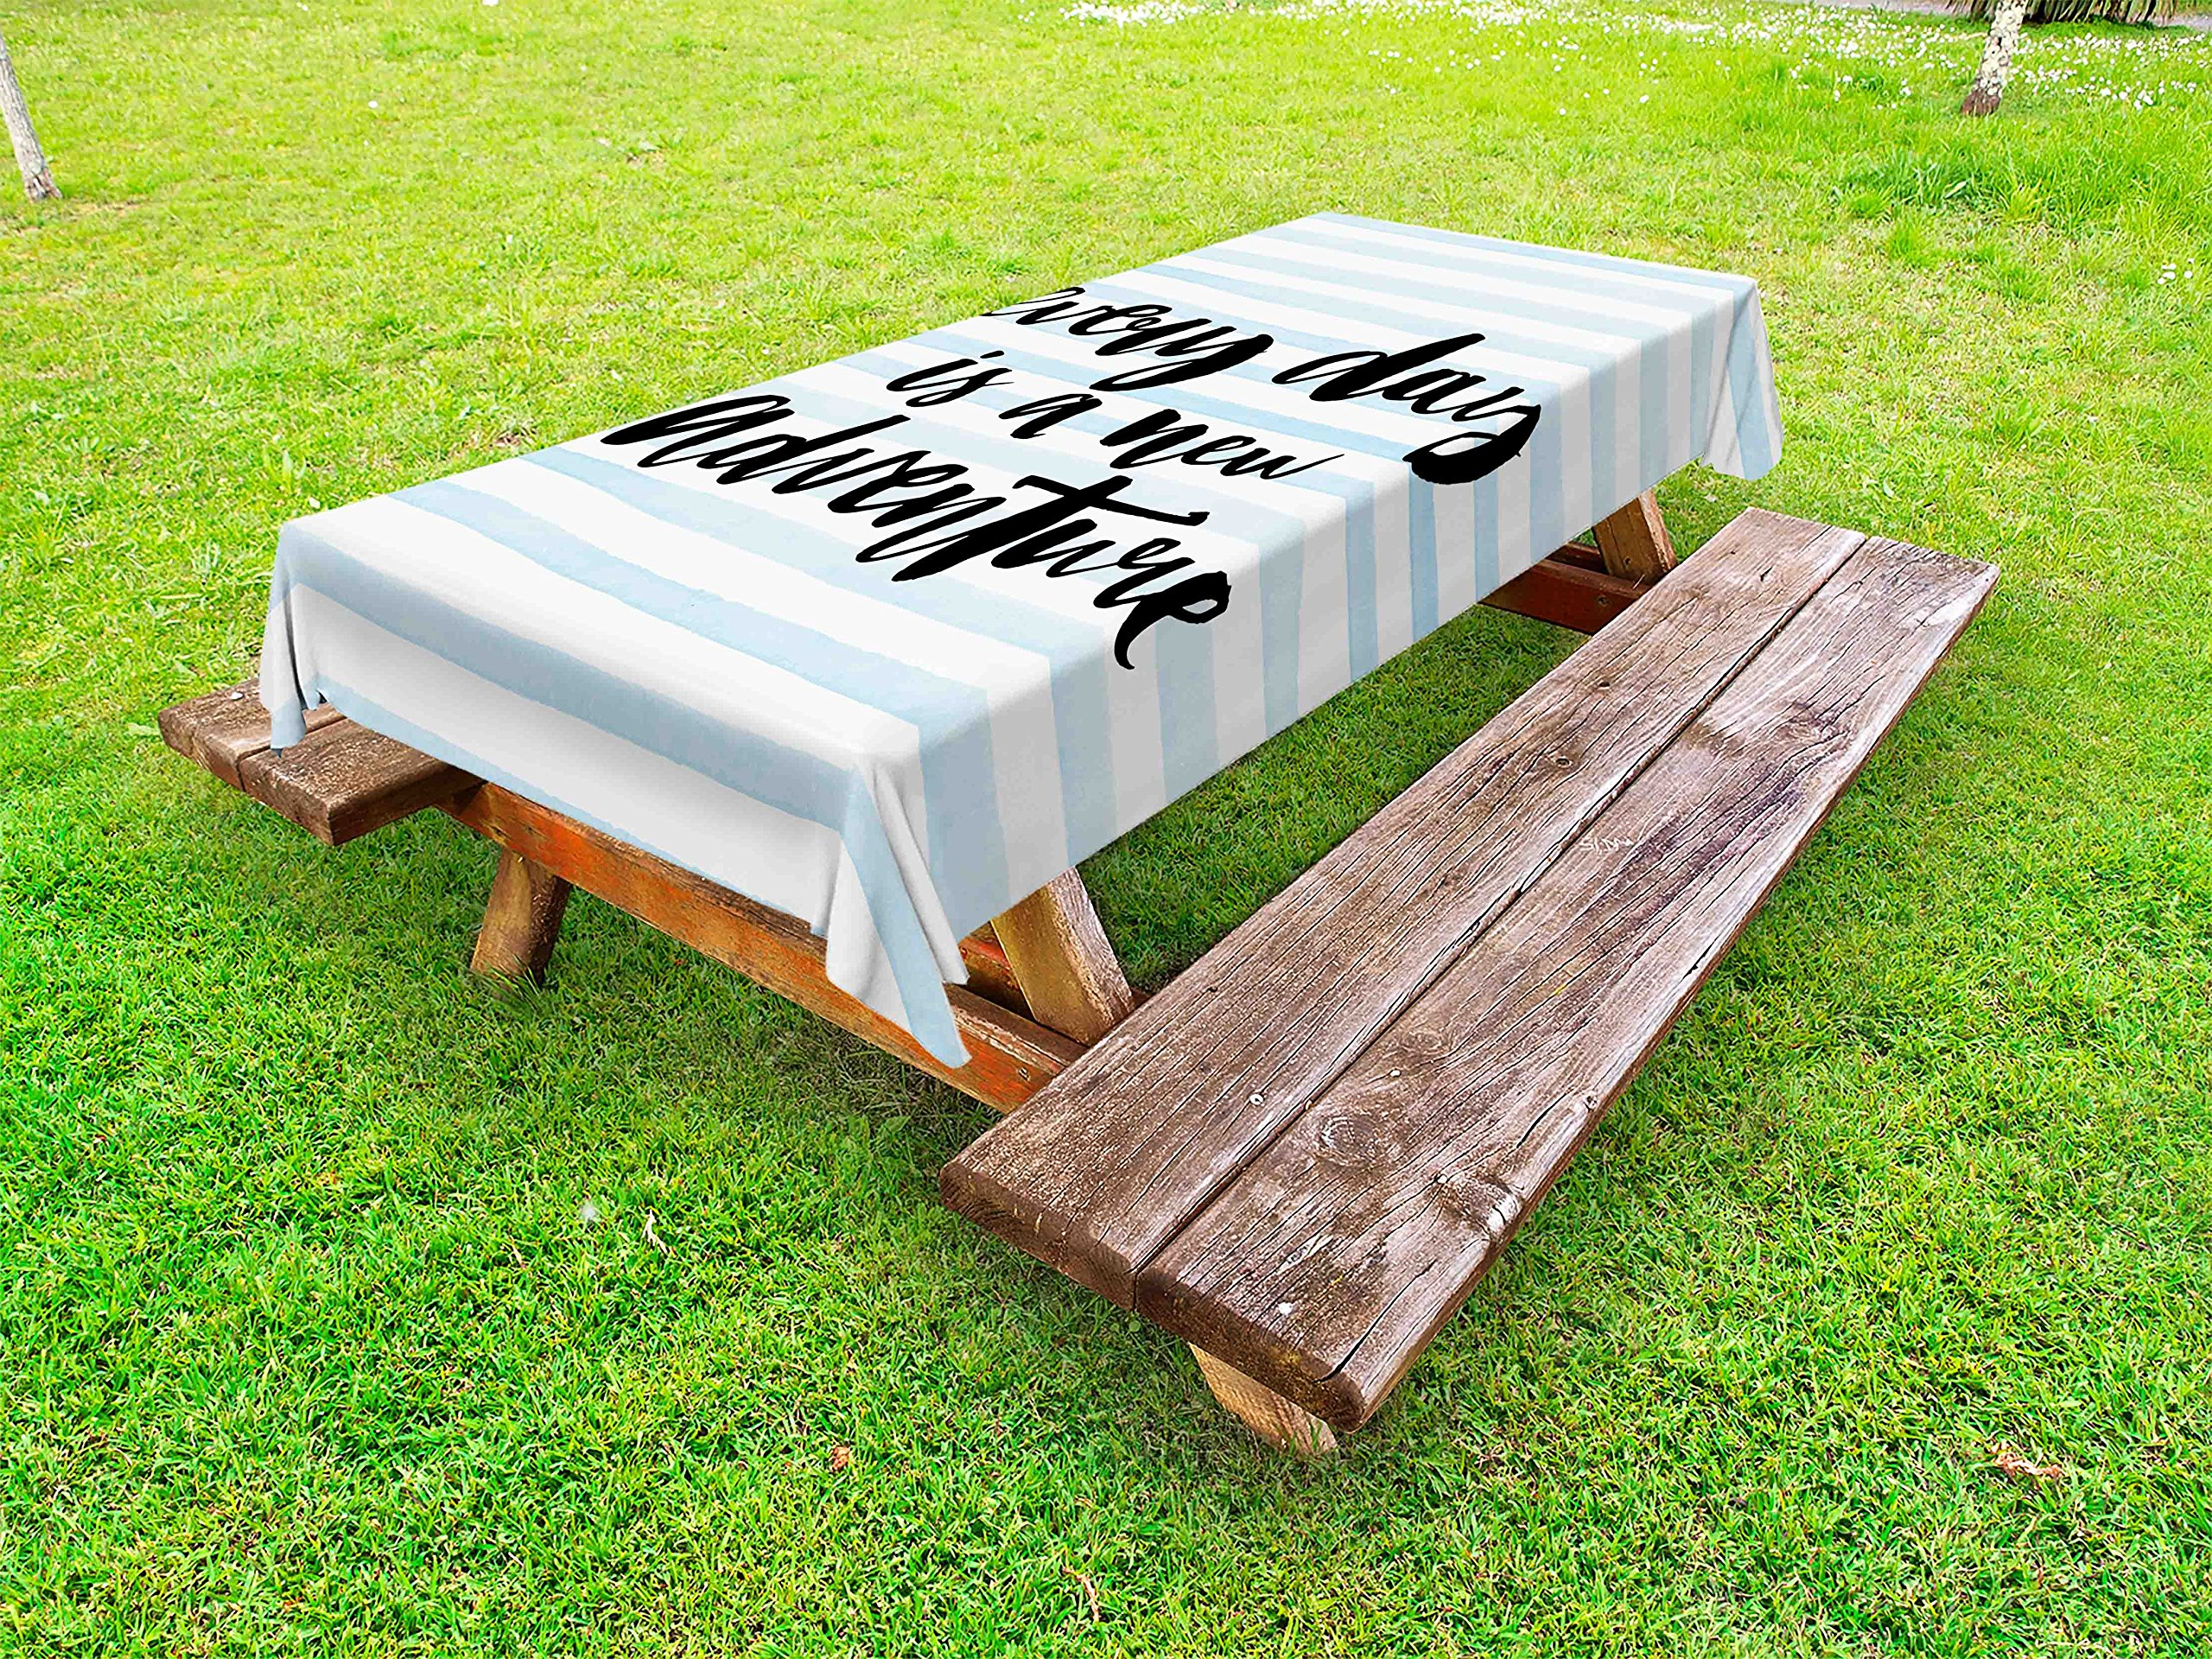 Ambesonne Inspirational Quotes Outdoor Tablecloth, Every Day is a New Adventure Calligraphy Text Watercolor Stripes Print, Decorative Washable Picnic Table Cloth, 58 X 84 inches, Pale Blue by Ambesonne